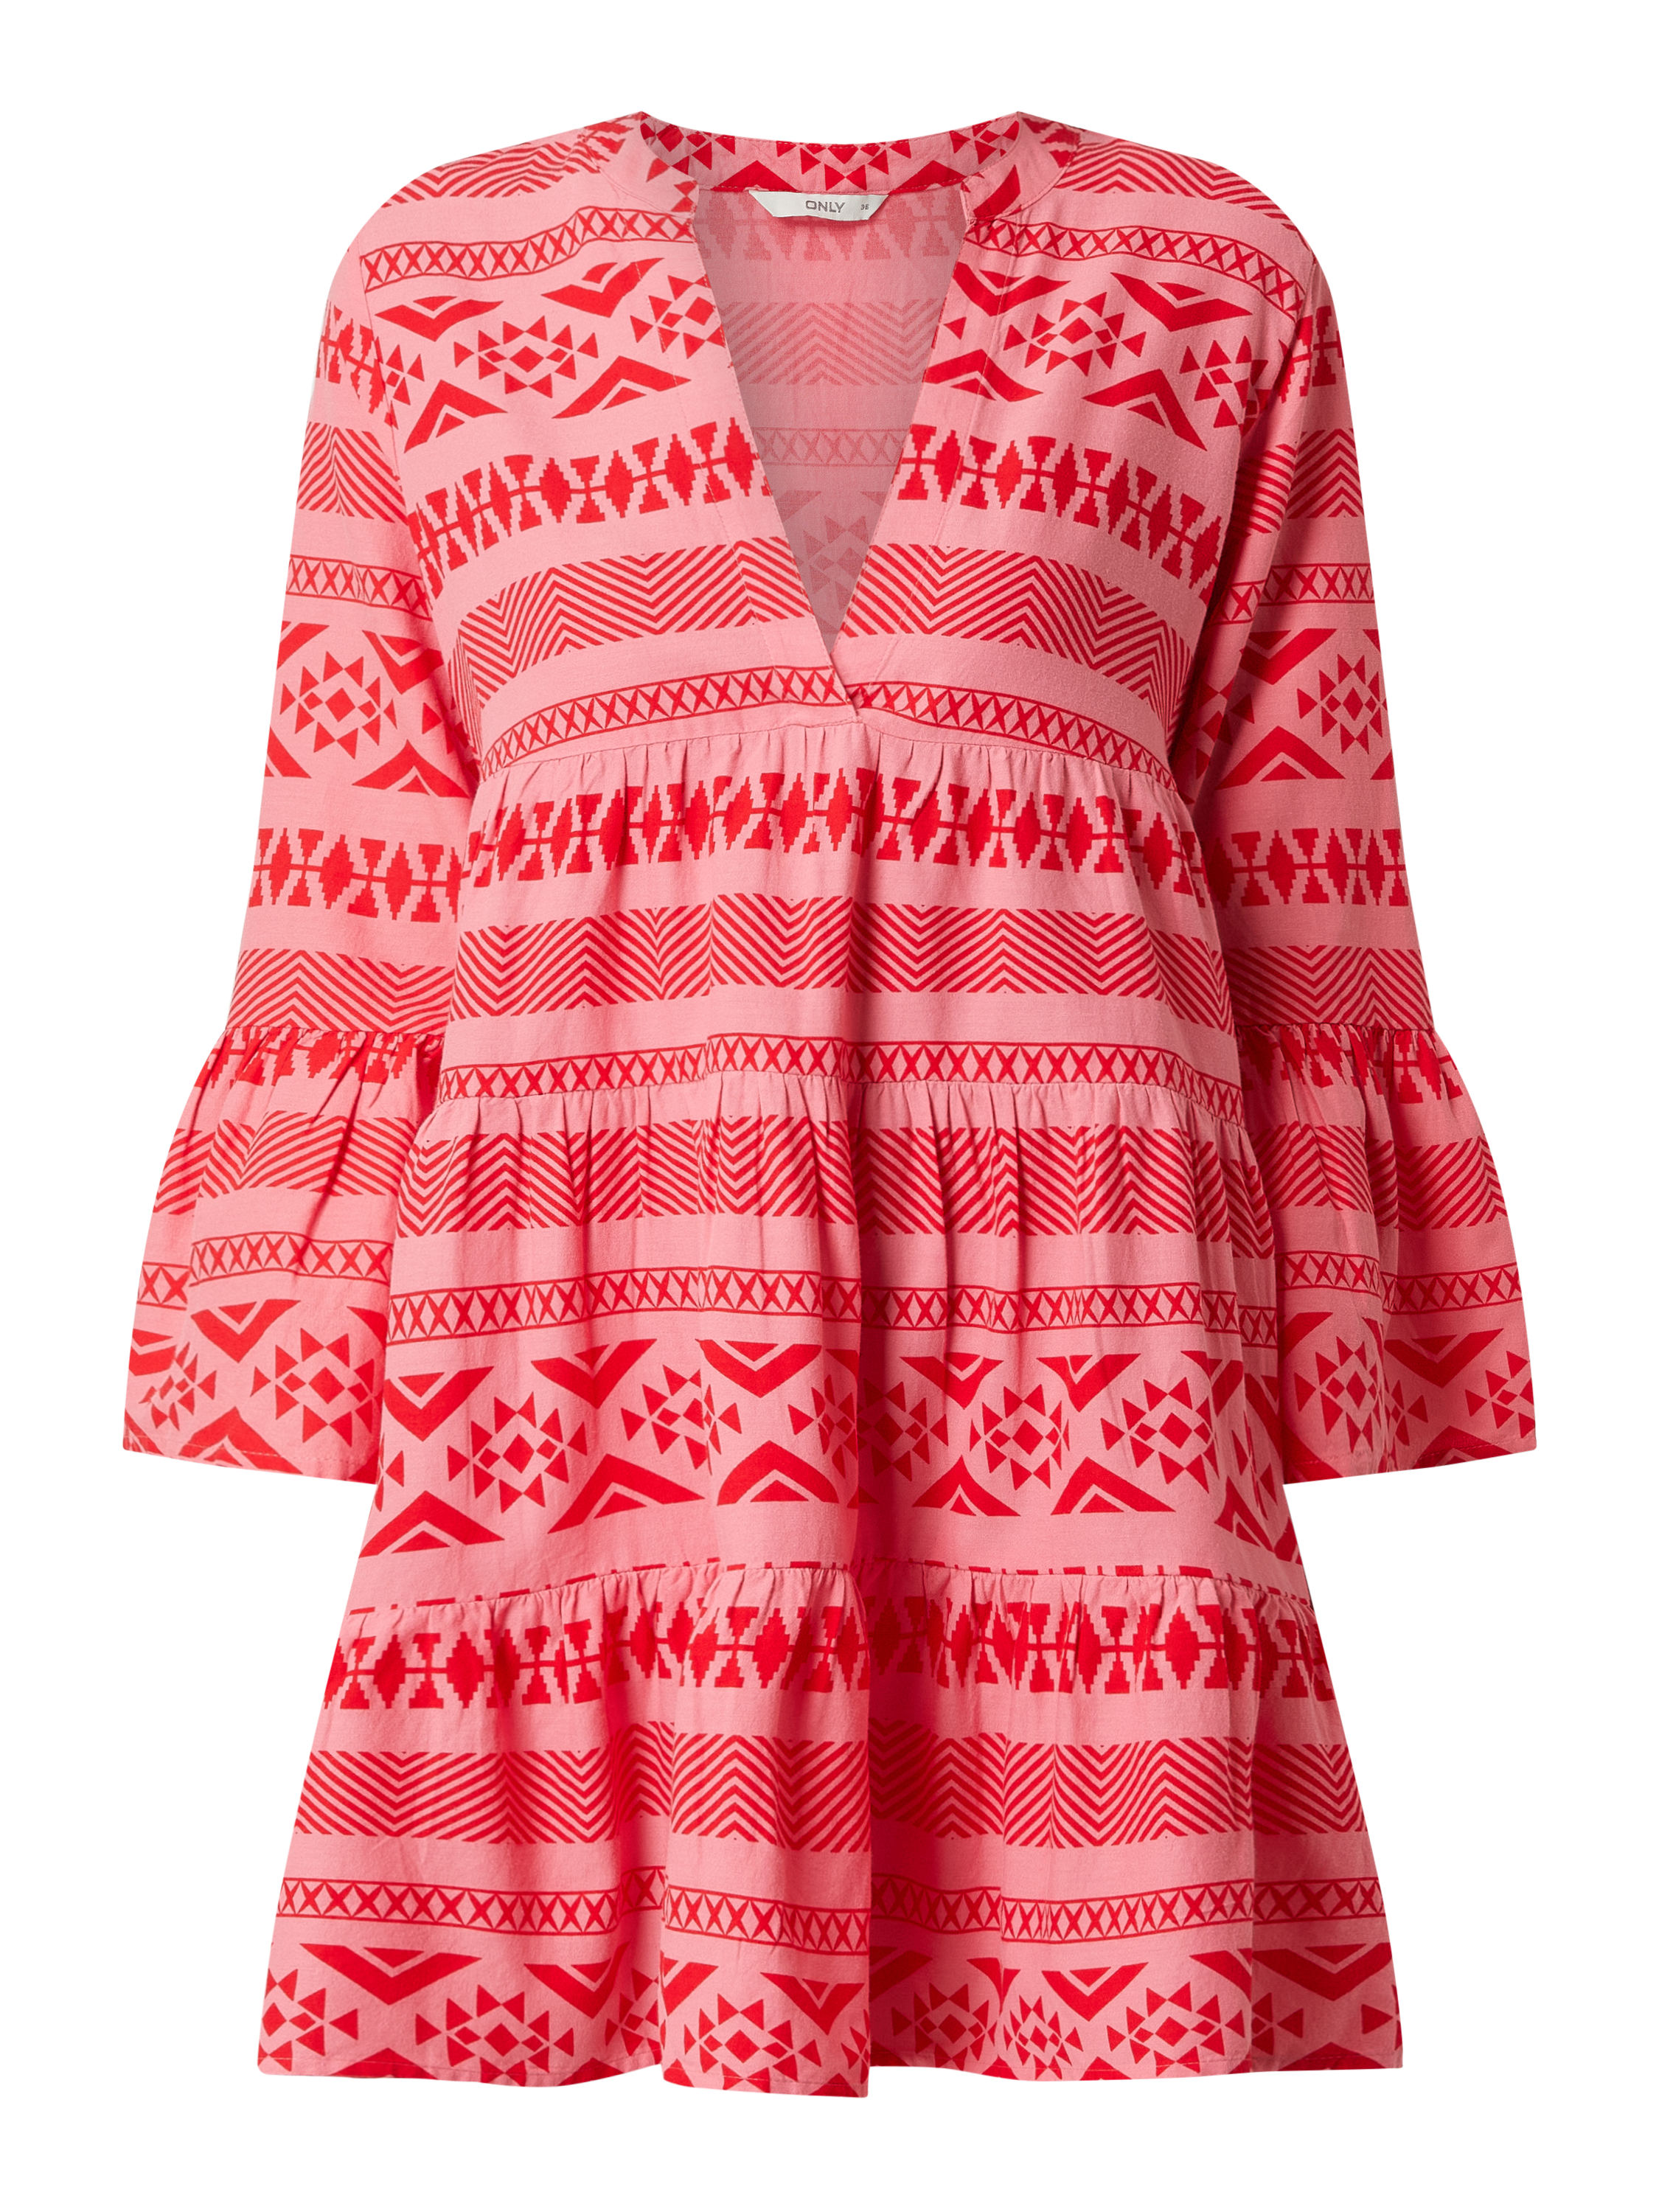 Only – Kleid mit Ethno Muster Modell 'Lucca' – Pink